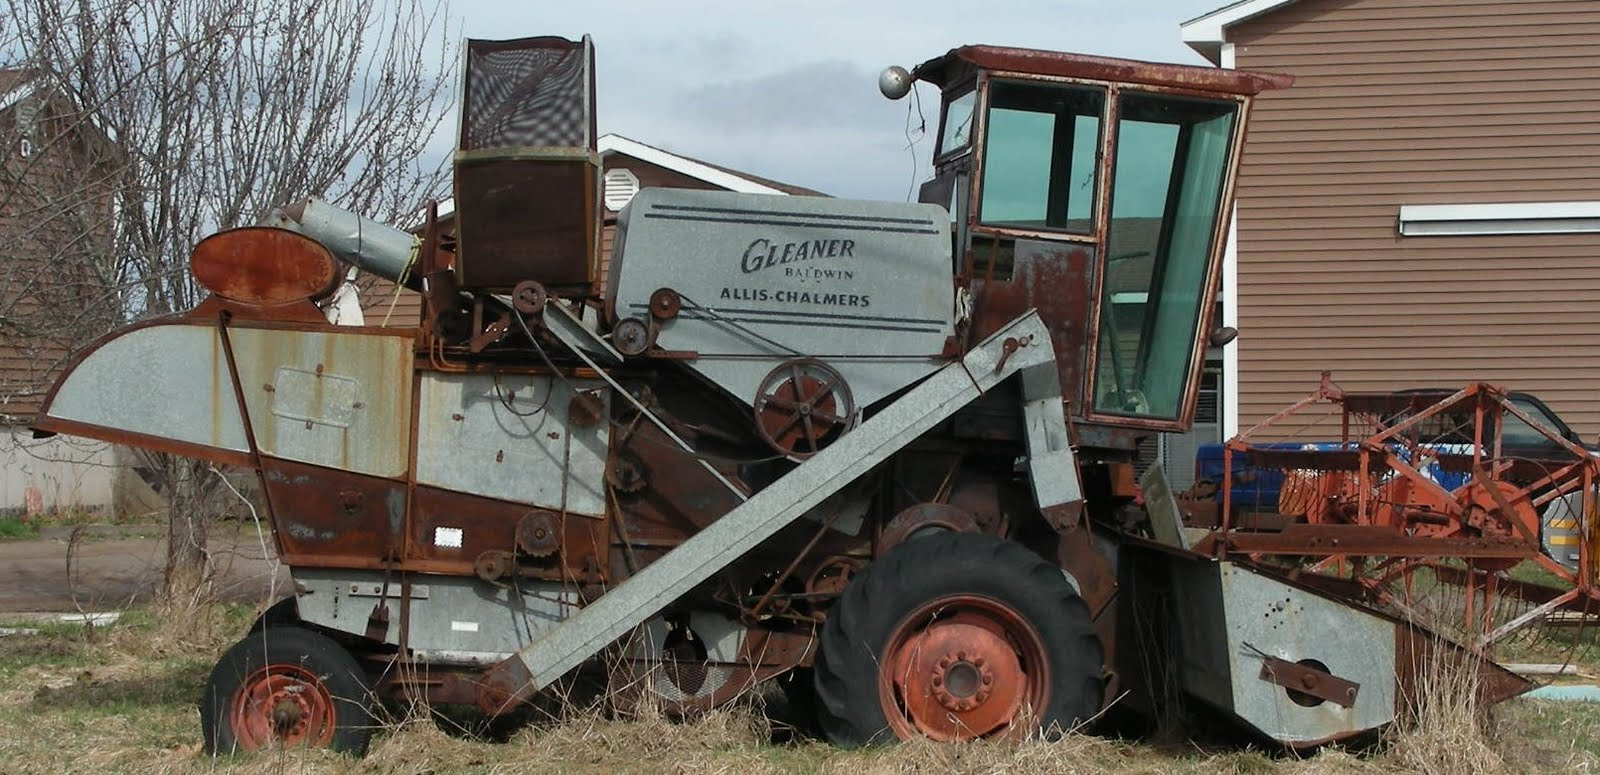 Pin Gleaner Combines On Pinterest